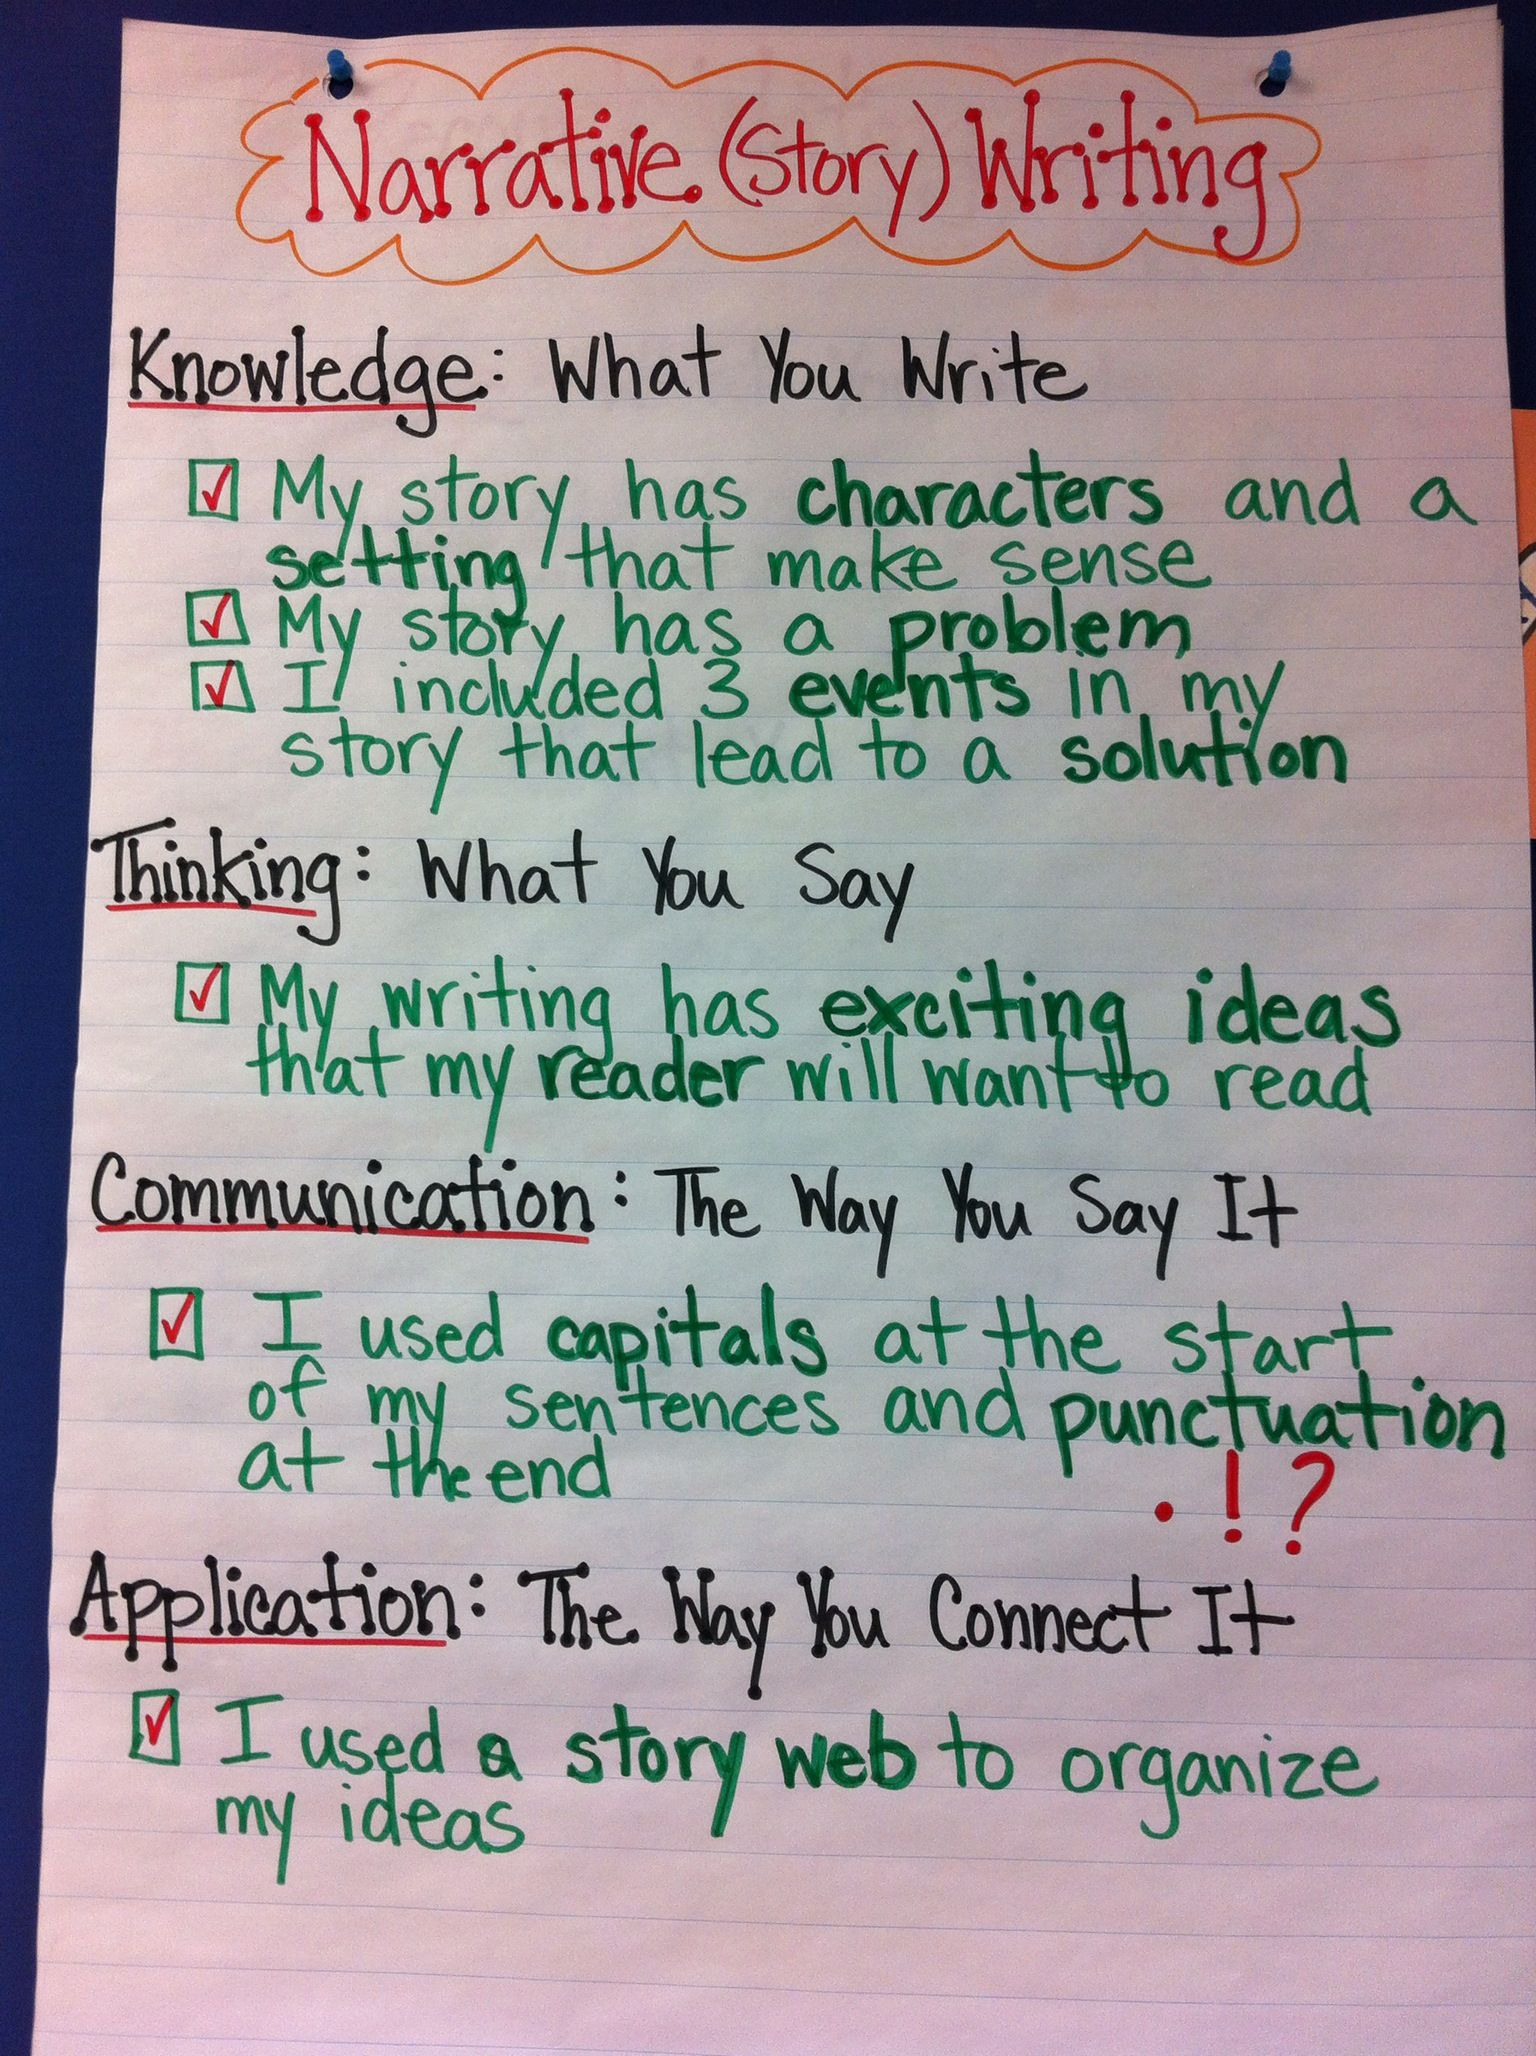 narrative essay on success Free essays on narrative essay on a moment of failure or success for students use our papers to help you with yours 1 - 30.